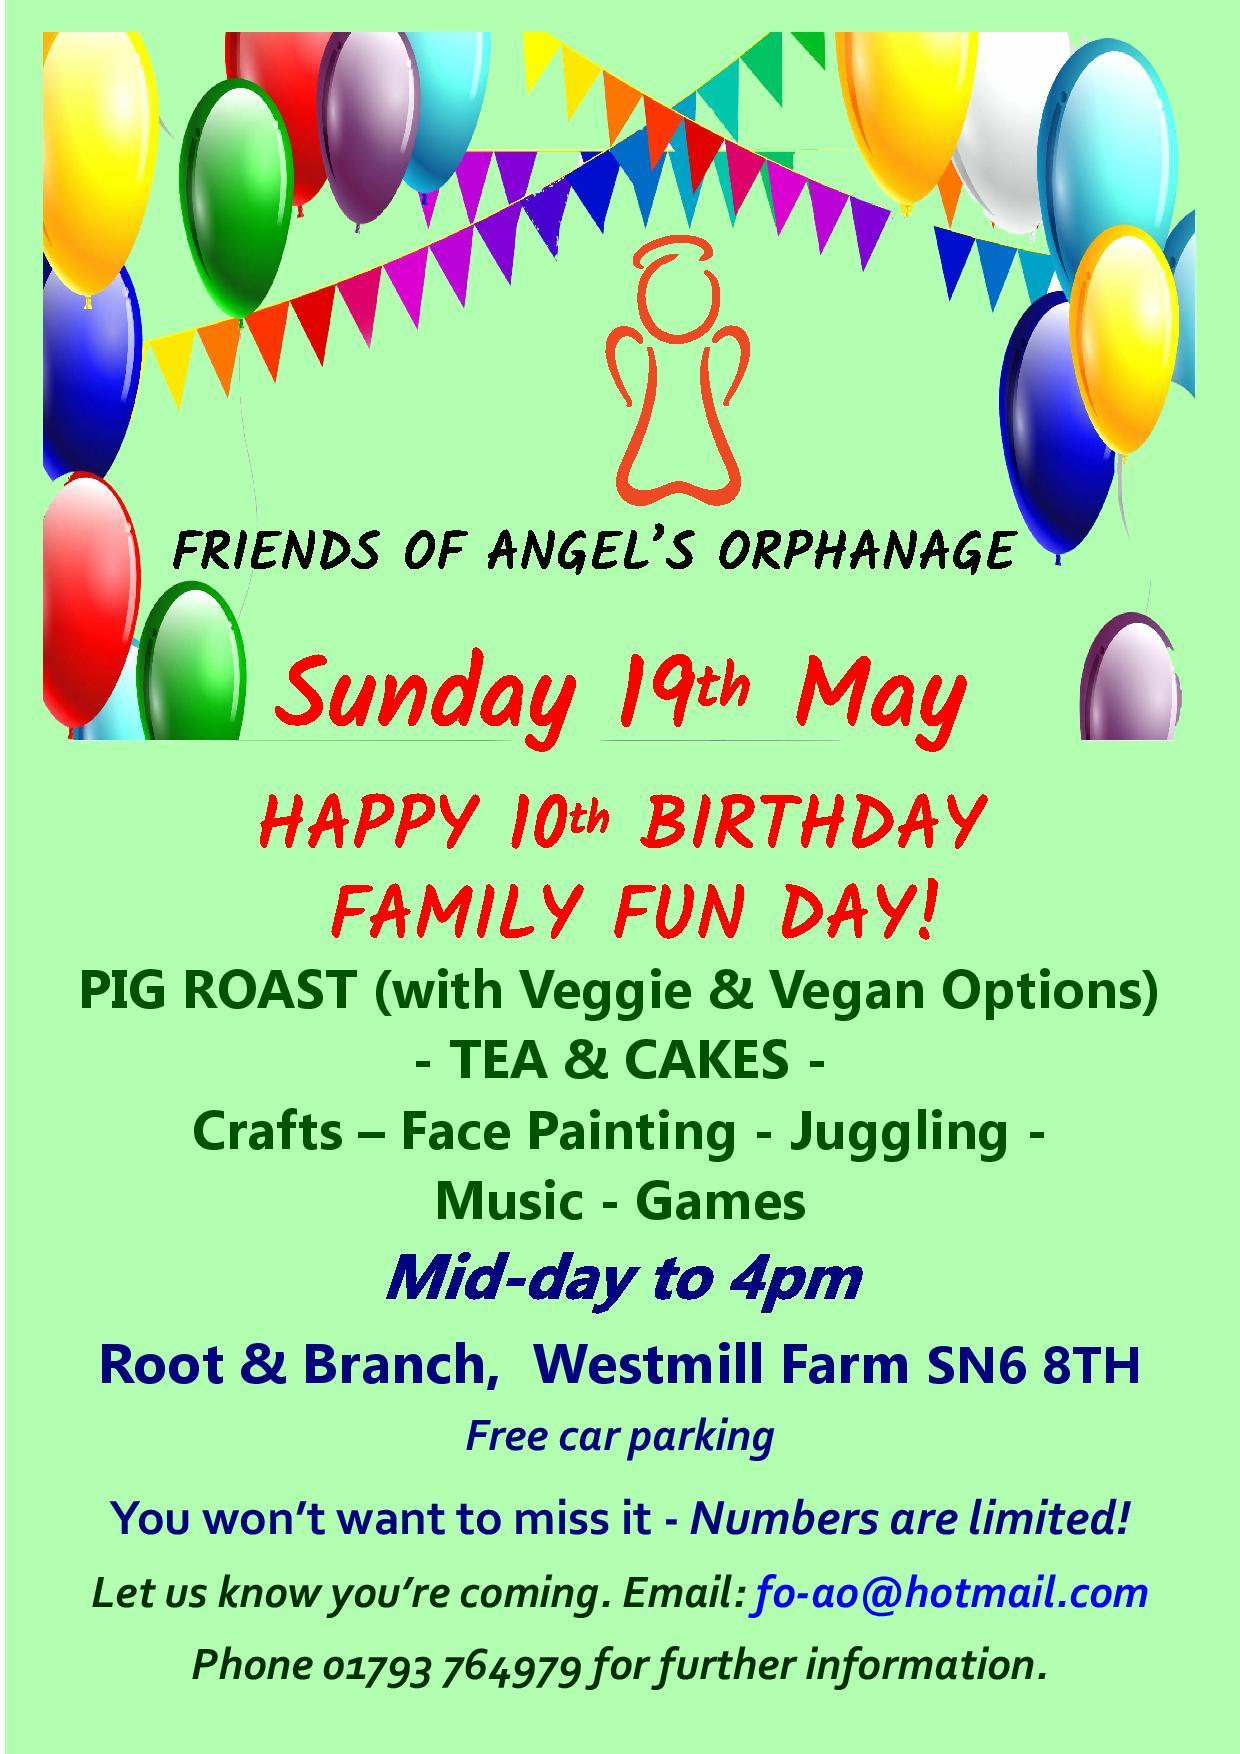 Celebrating 10 years for Friends of Angel's Orphanage